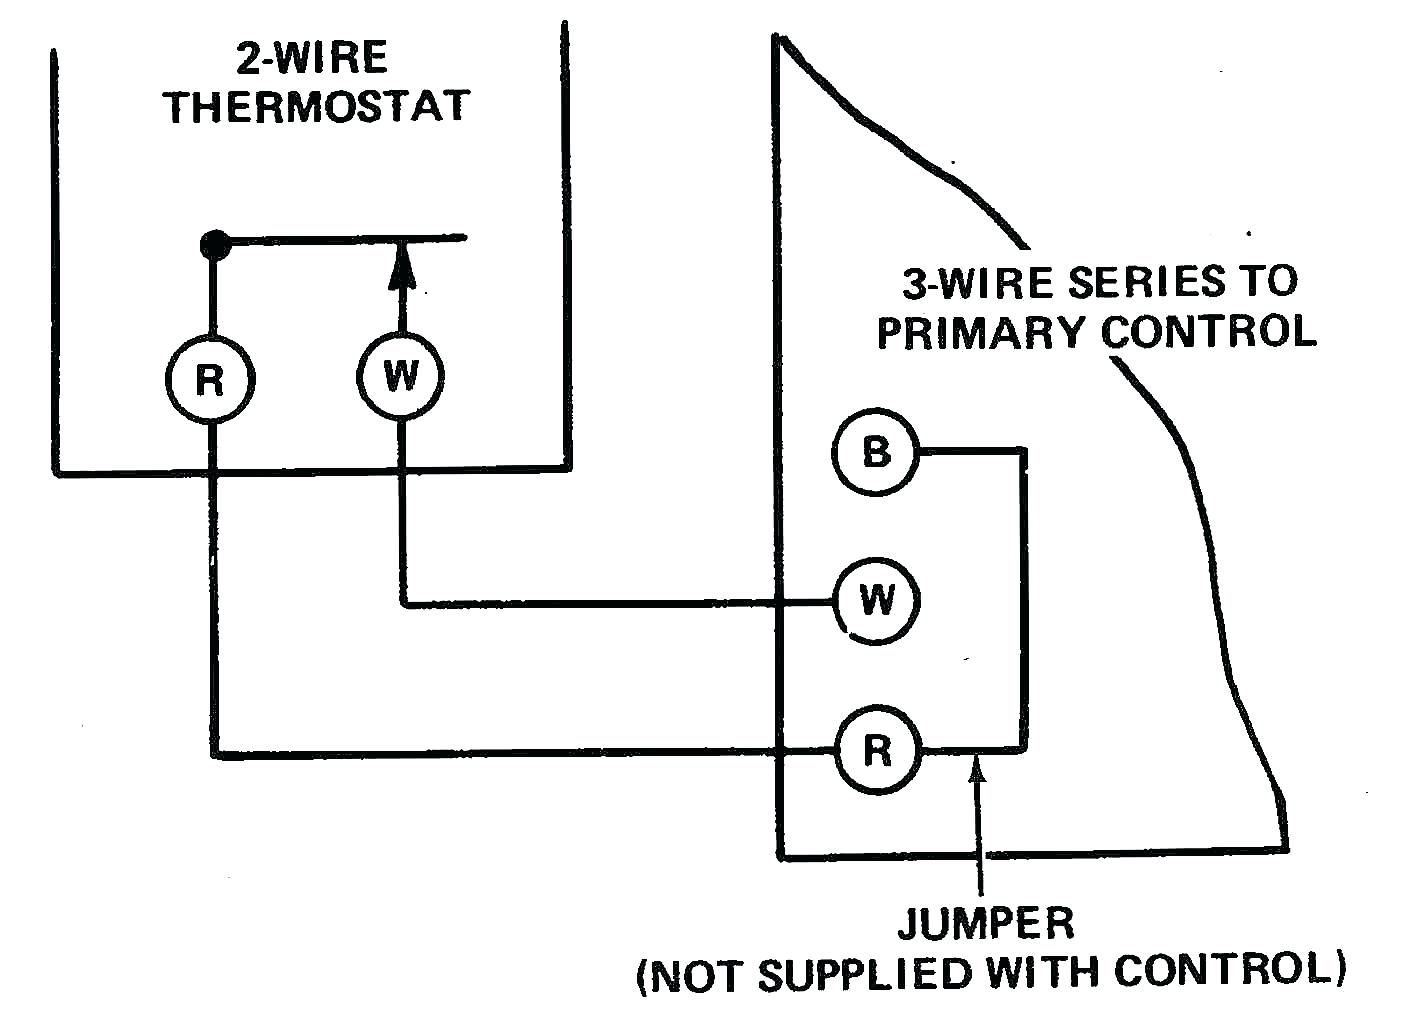 2 wire thermostat wiring diagram heat only Download-2 Wire Thermostat Wiring Diagram Heat ly Luxury Reference Smart Installation For 9-b